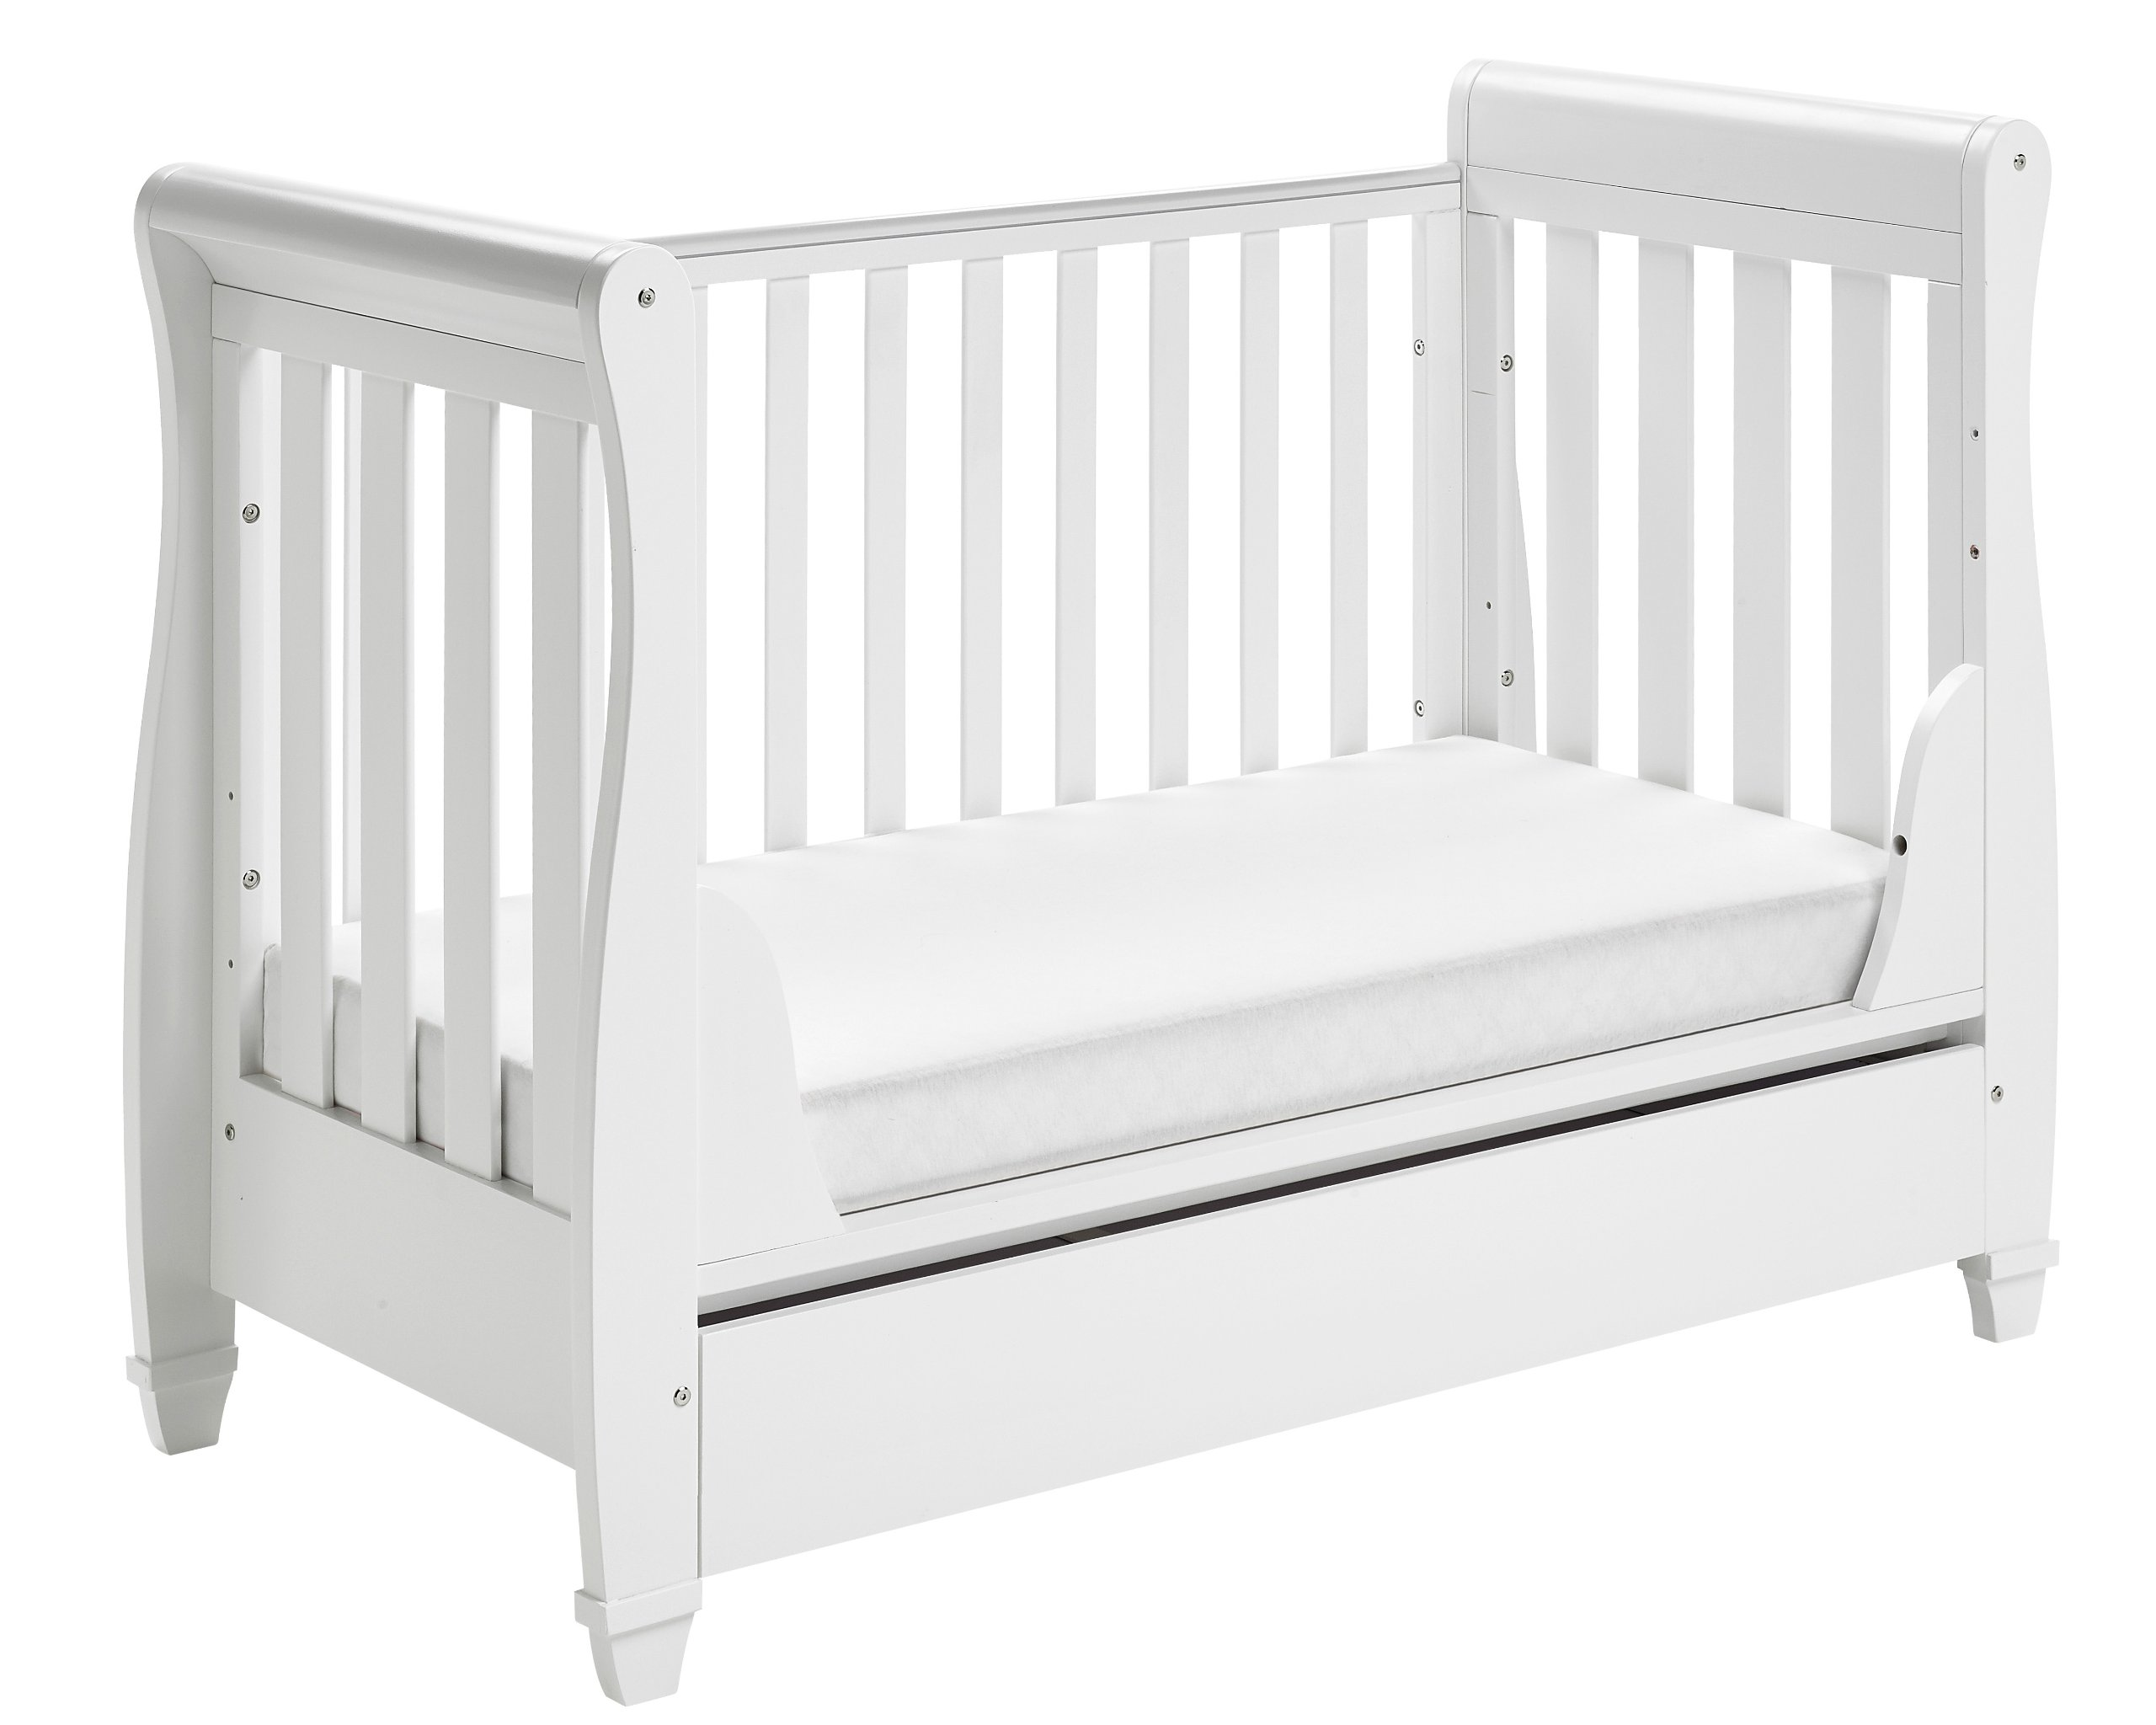 Babymore Eva Sleigh Cot Bed Dropside with Drawer (White Finish) + FOAM MATTRESS  Easily convert to junior bed/sofa/day bed, Meet British and European safety standards; Single handed drop side mechanism allow easy access to your baby Protective Teething rail on top of both sides. Full drawer on runner provide extra storage 7